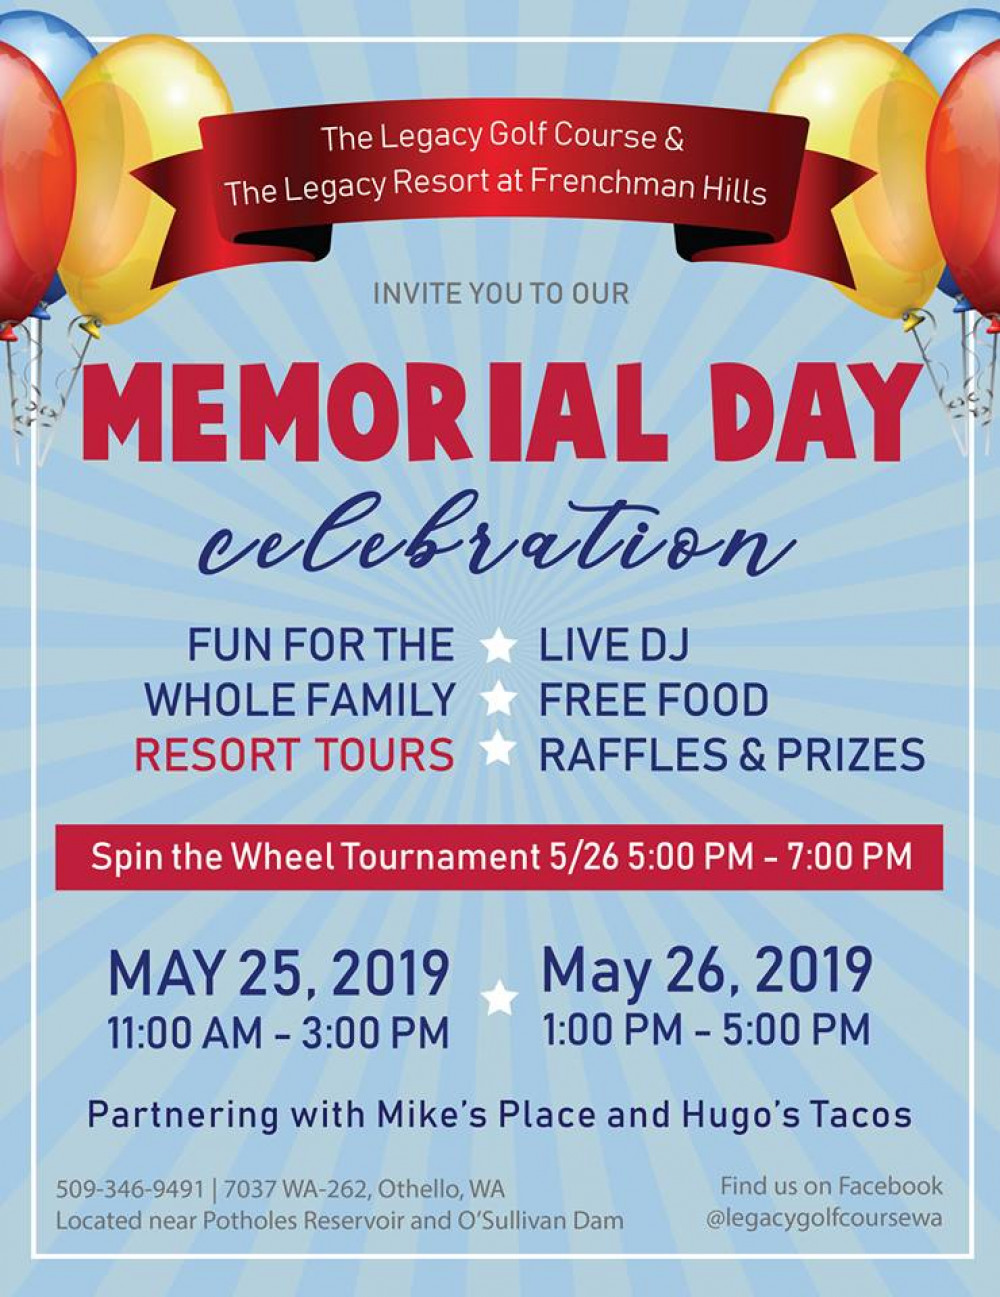 The Legacy Golf Course hosts the 2nd Annual Memorial Day Celebration